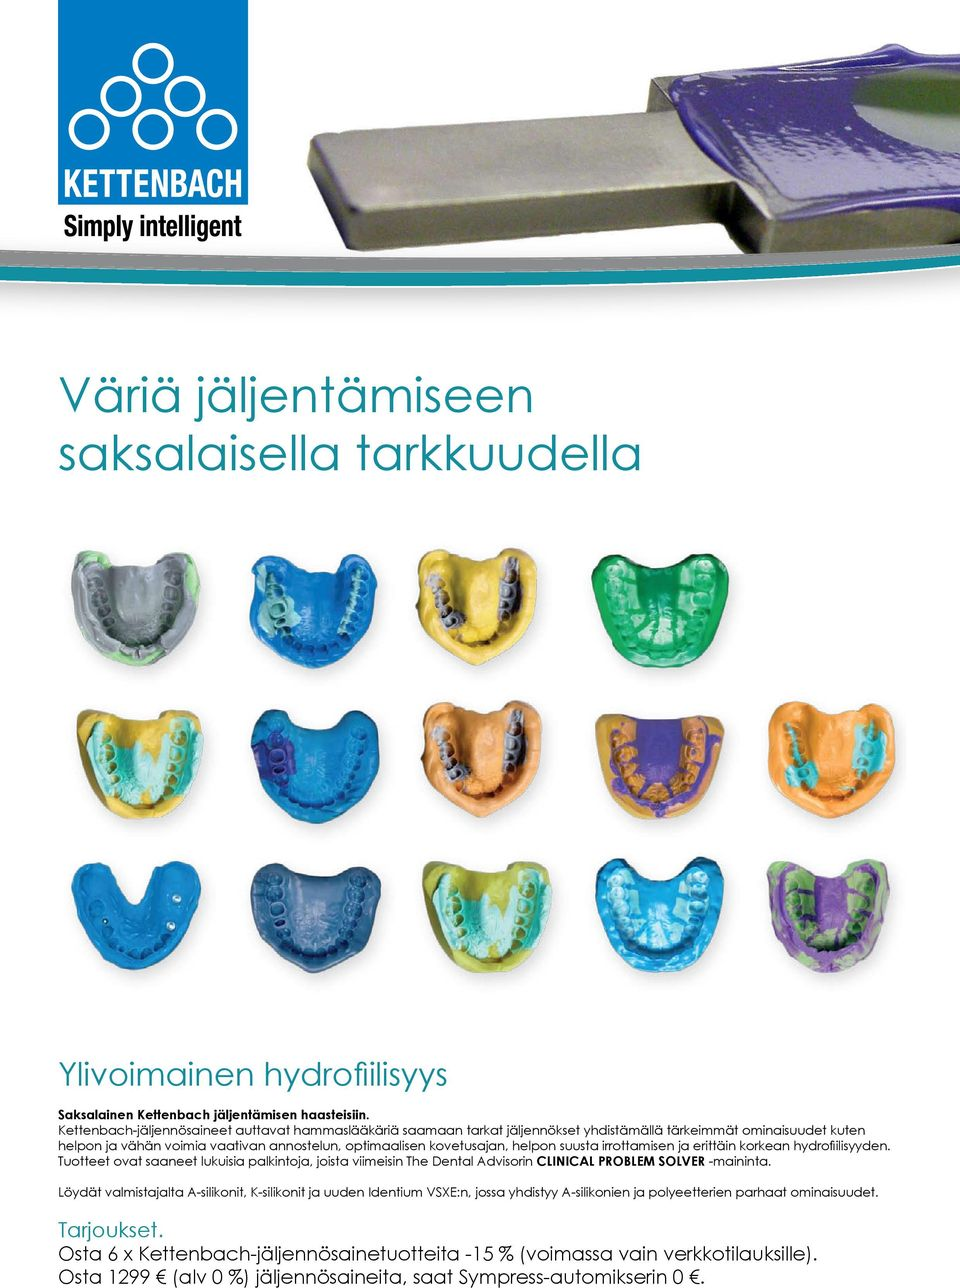 suusta irrottamisen ja erittäin korkean hydrofiilisyyden. Tuotteet ovat saaneet lukuisia palkintoja, joista viimeisin The Dental Advisorin CLINICAL PROBLEM SOLVER -maininta.